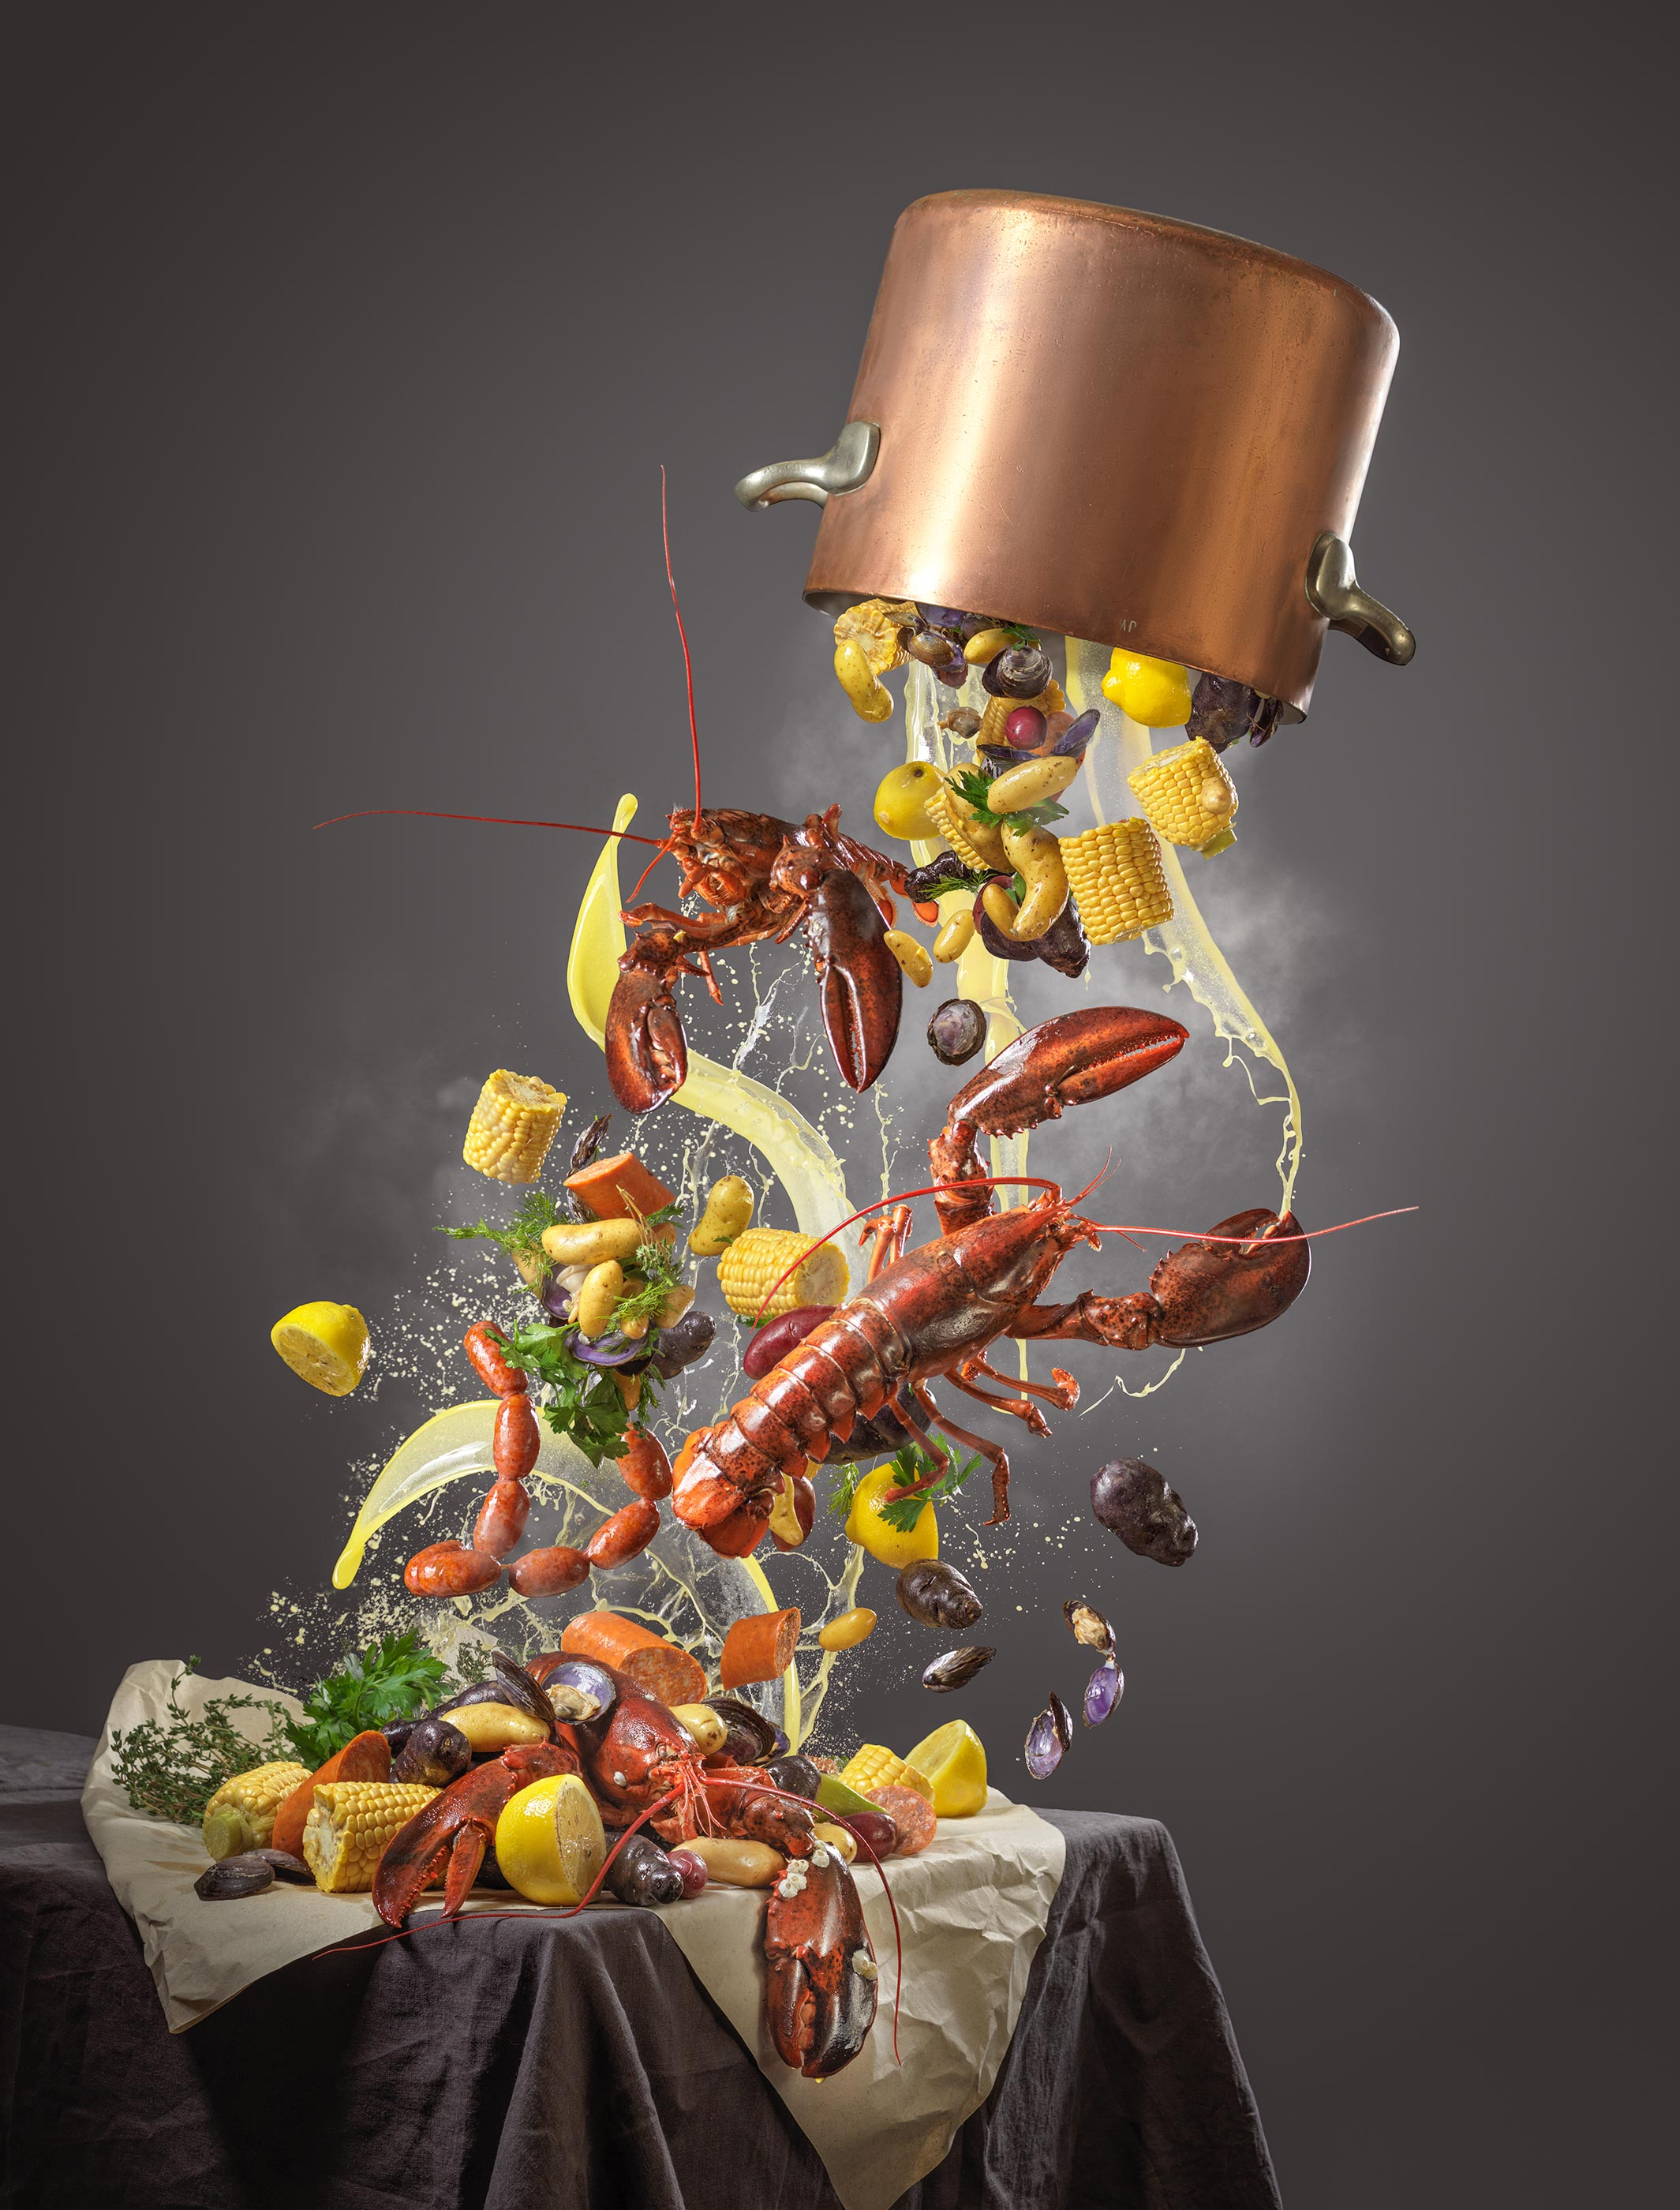 Lobster Clam Bake Splash | Steve Hansen Seattle Food Photographer